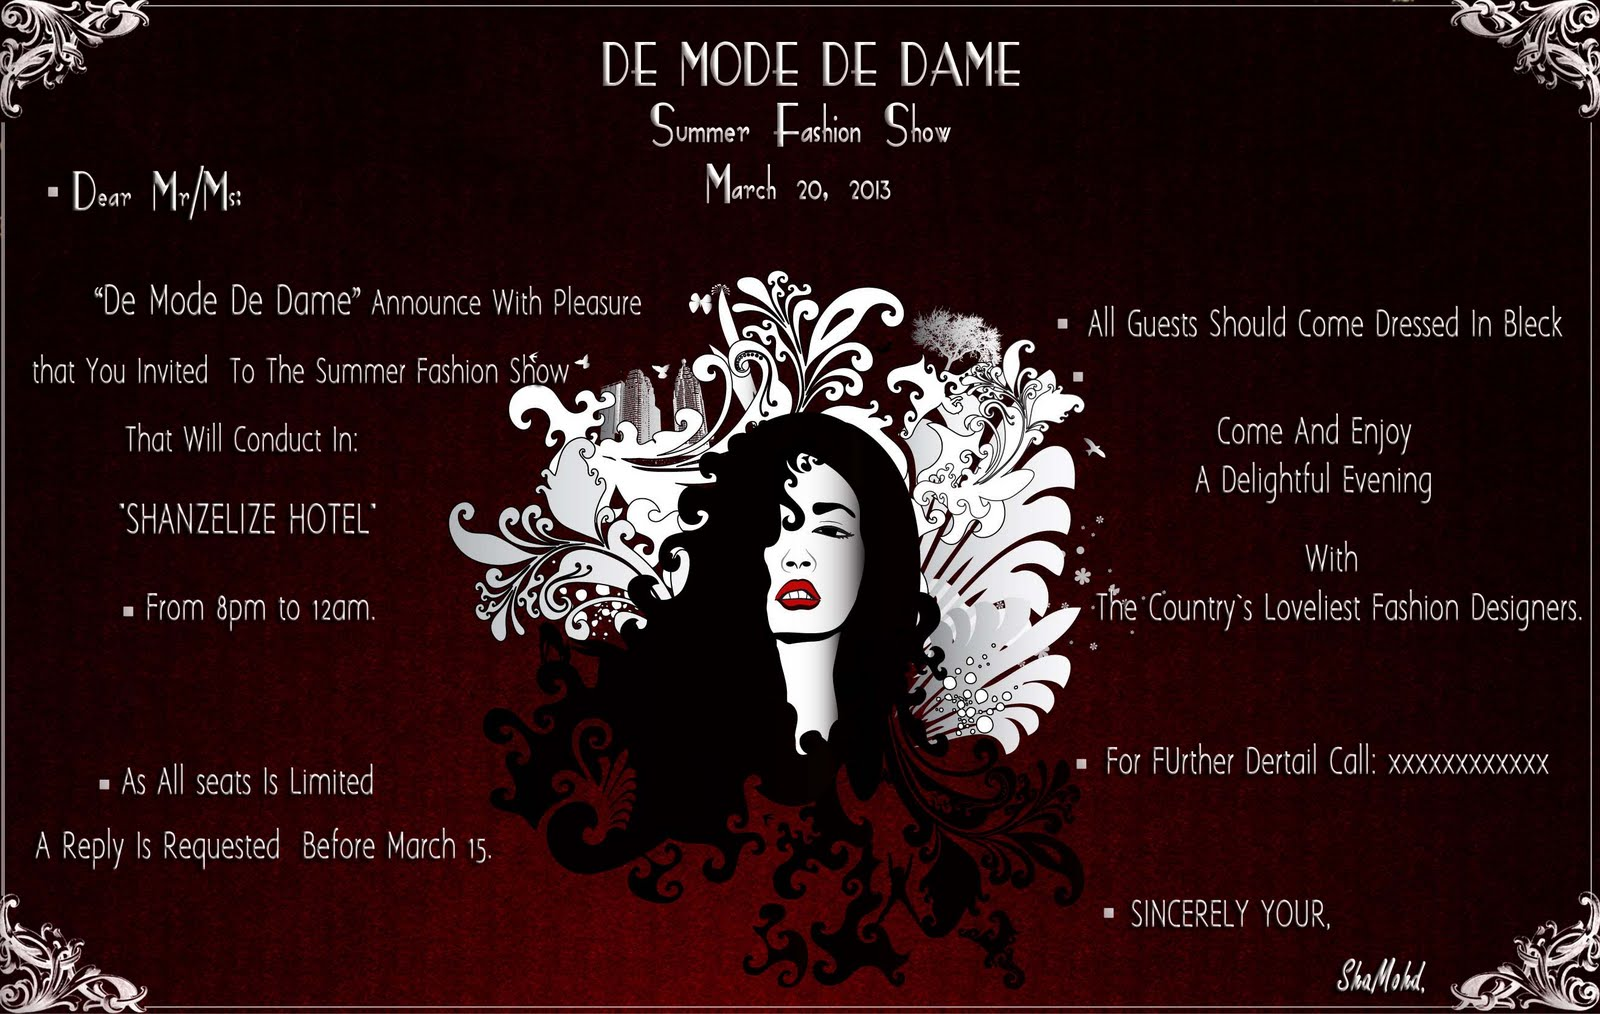 Fashion show invitation sample 40